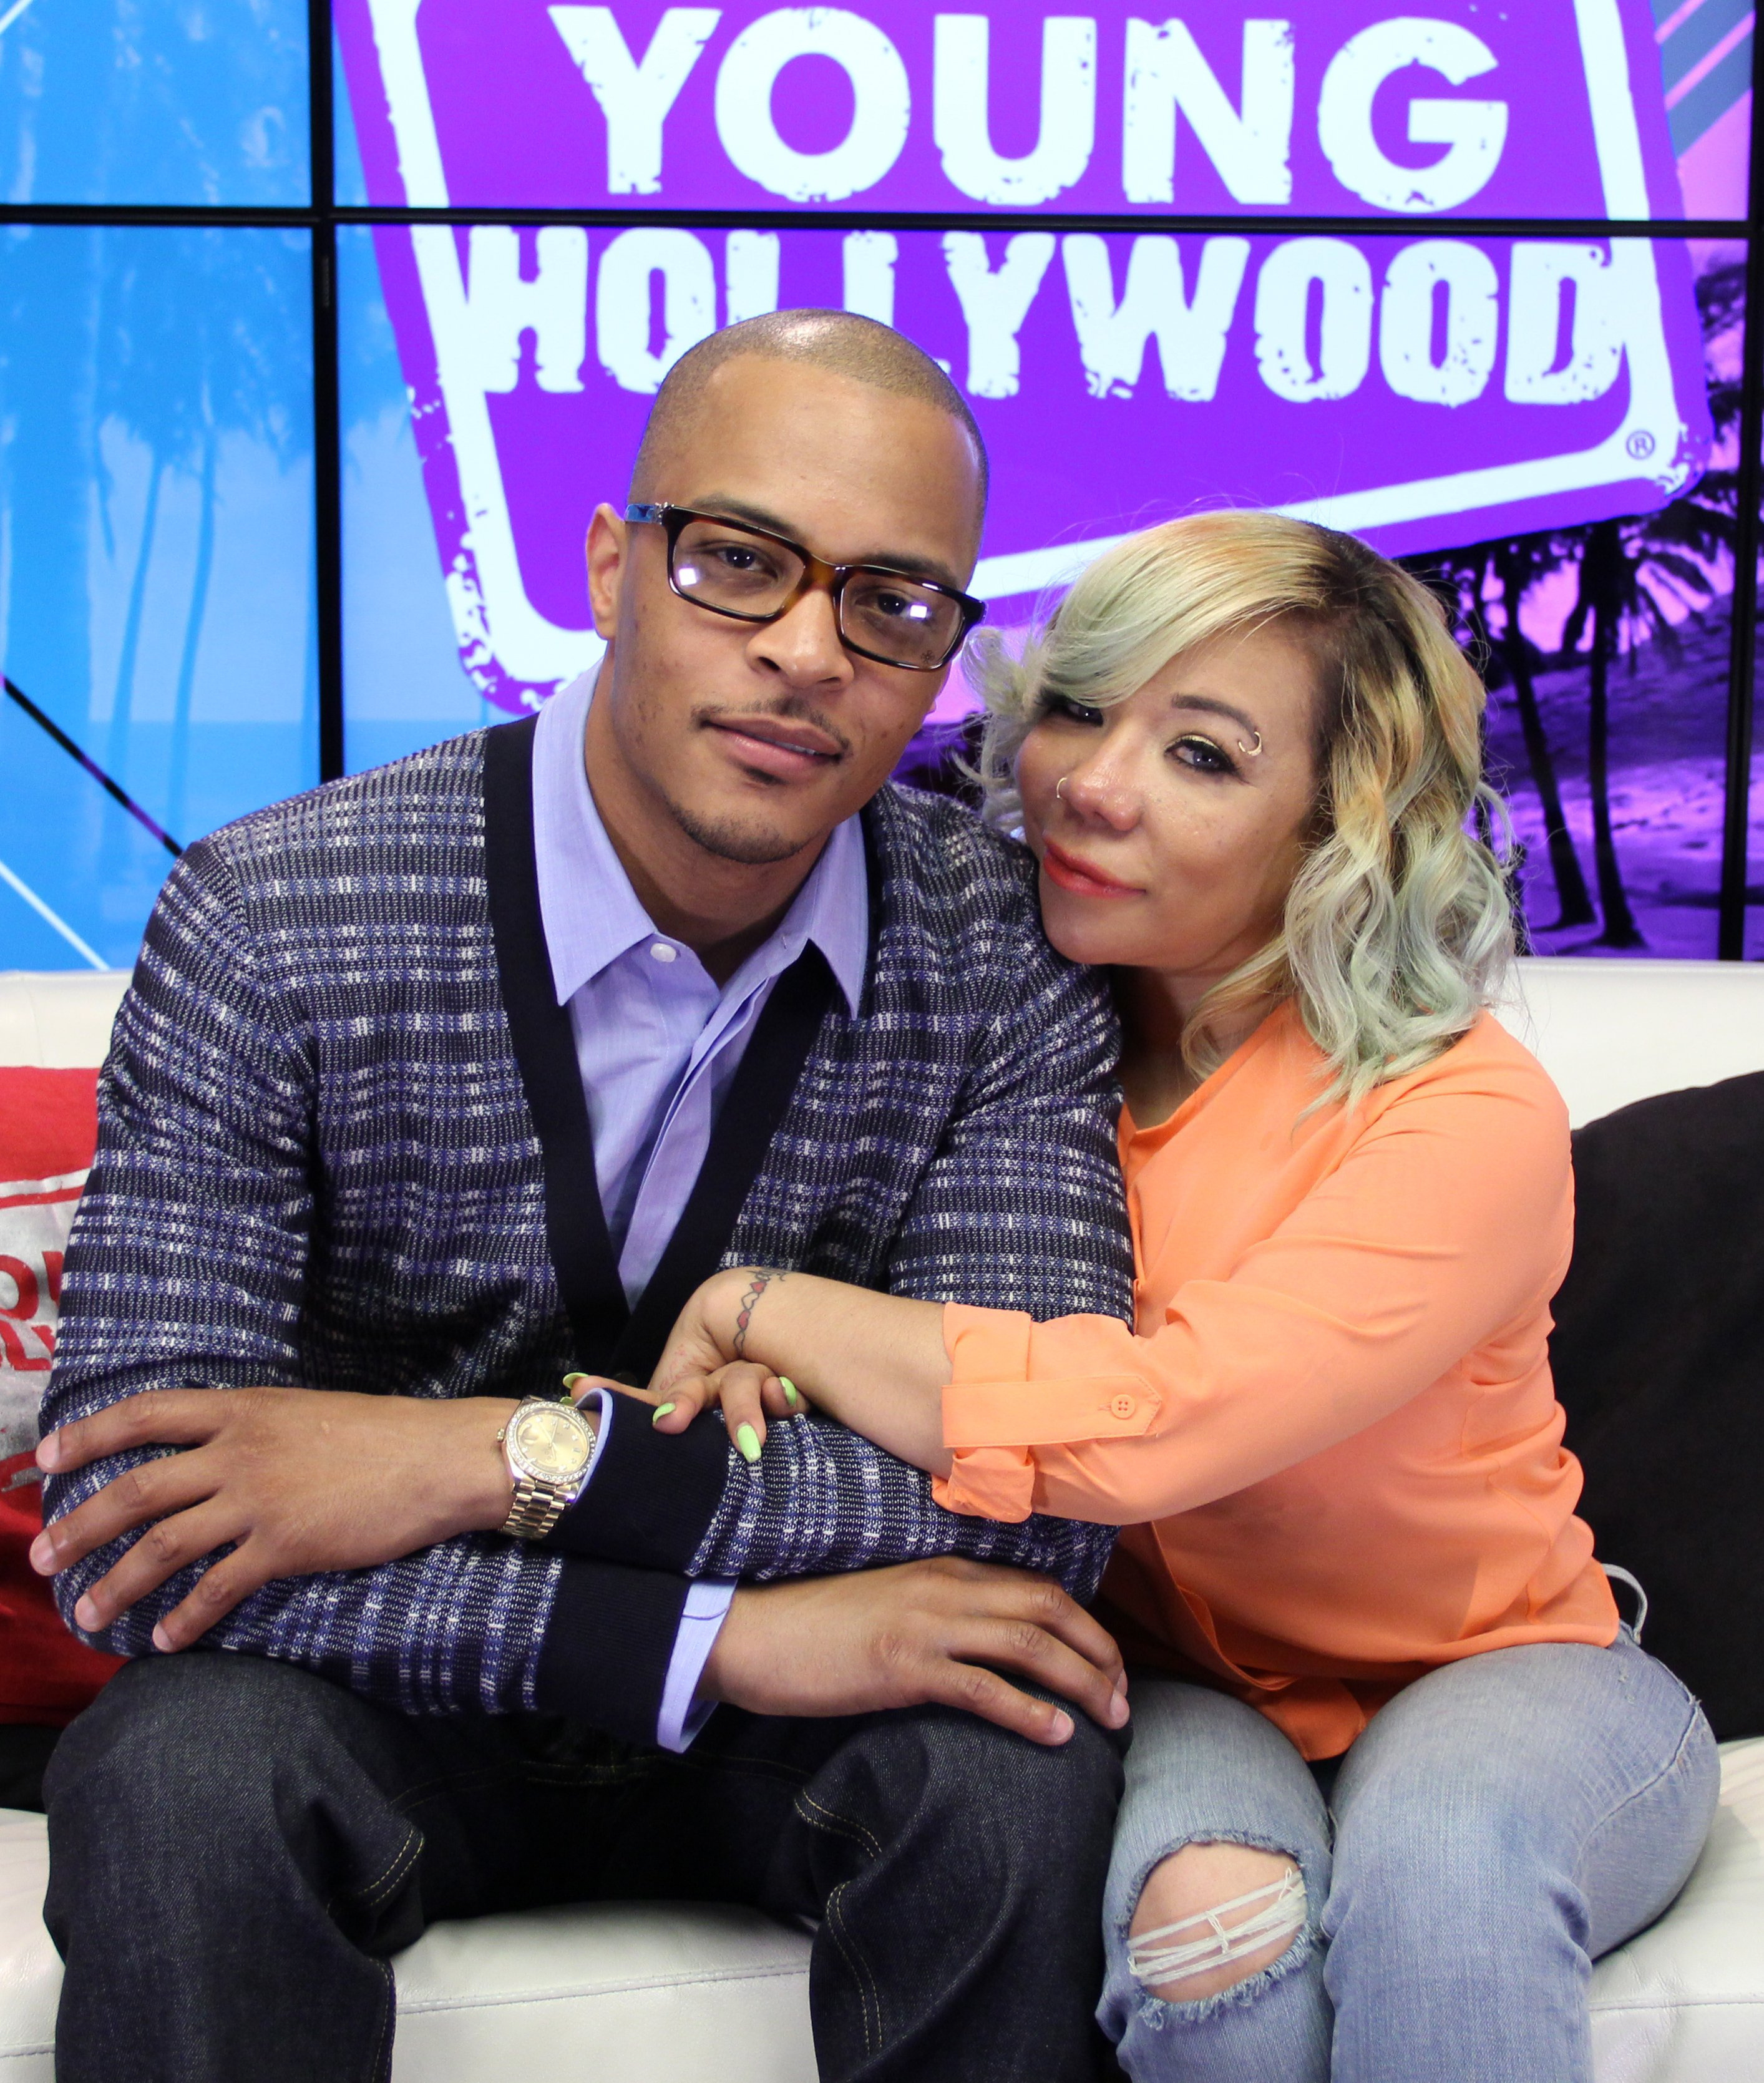 T.I. and Tiny at the Young Hollywood Studio on June 1, 2015.   Photo: GettyImages